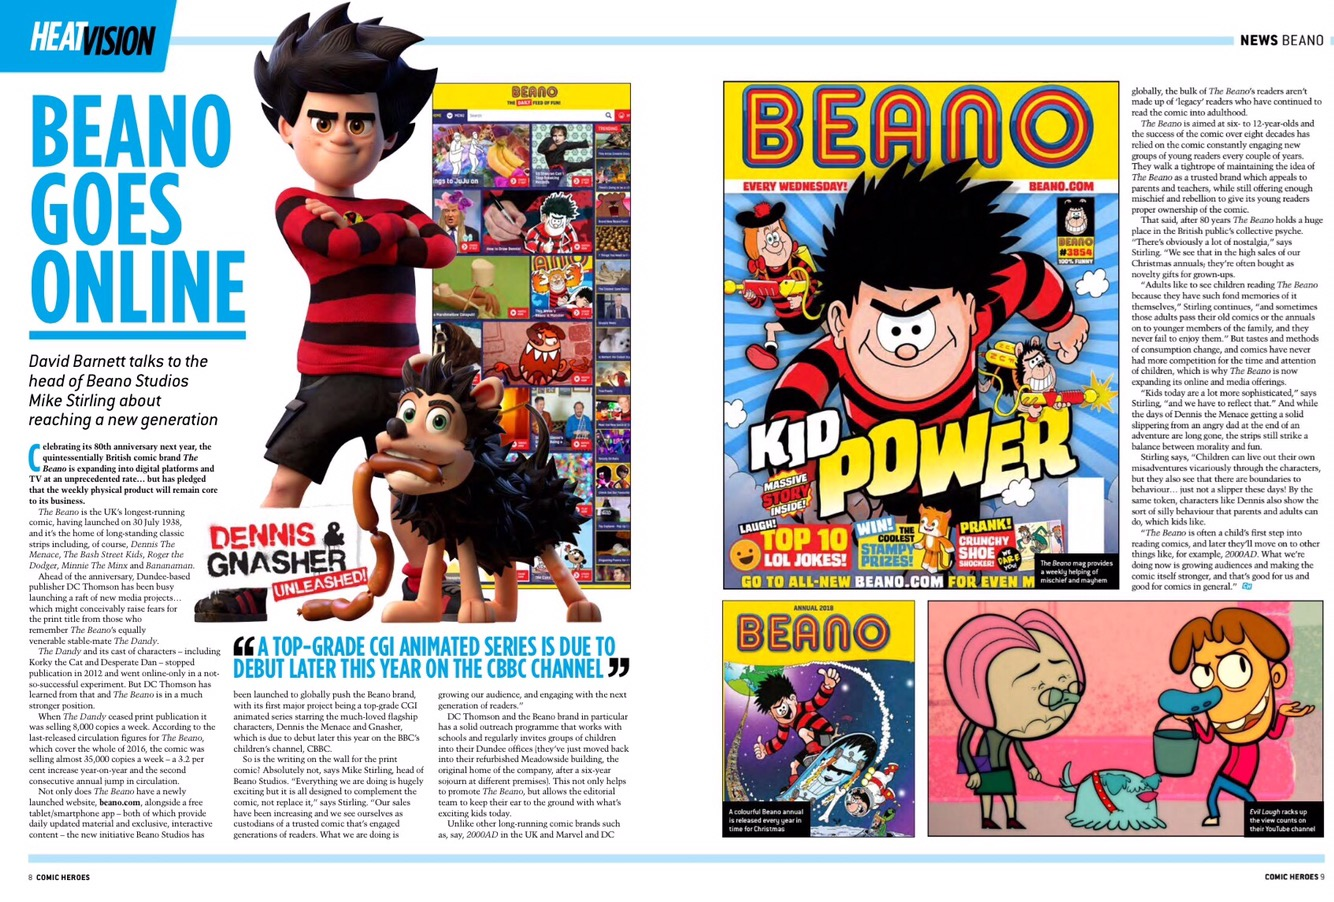 Comic Heroes Issue 32 - Beano Feature